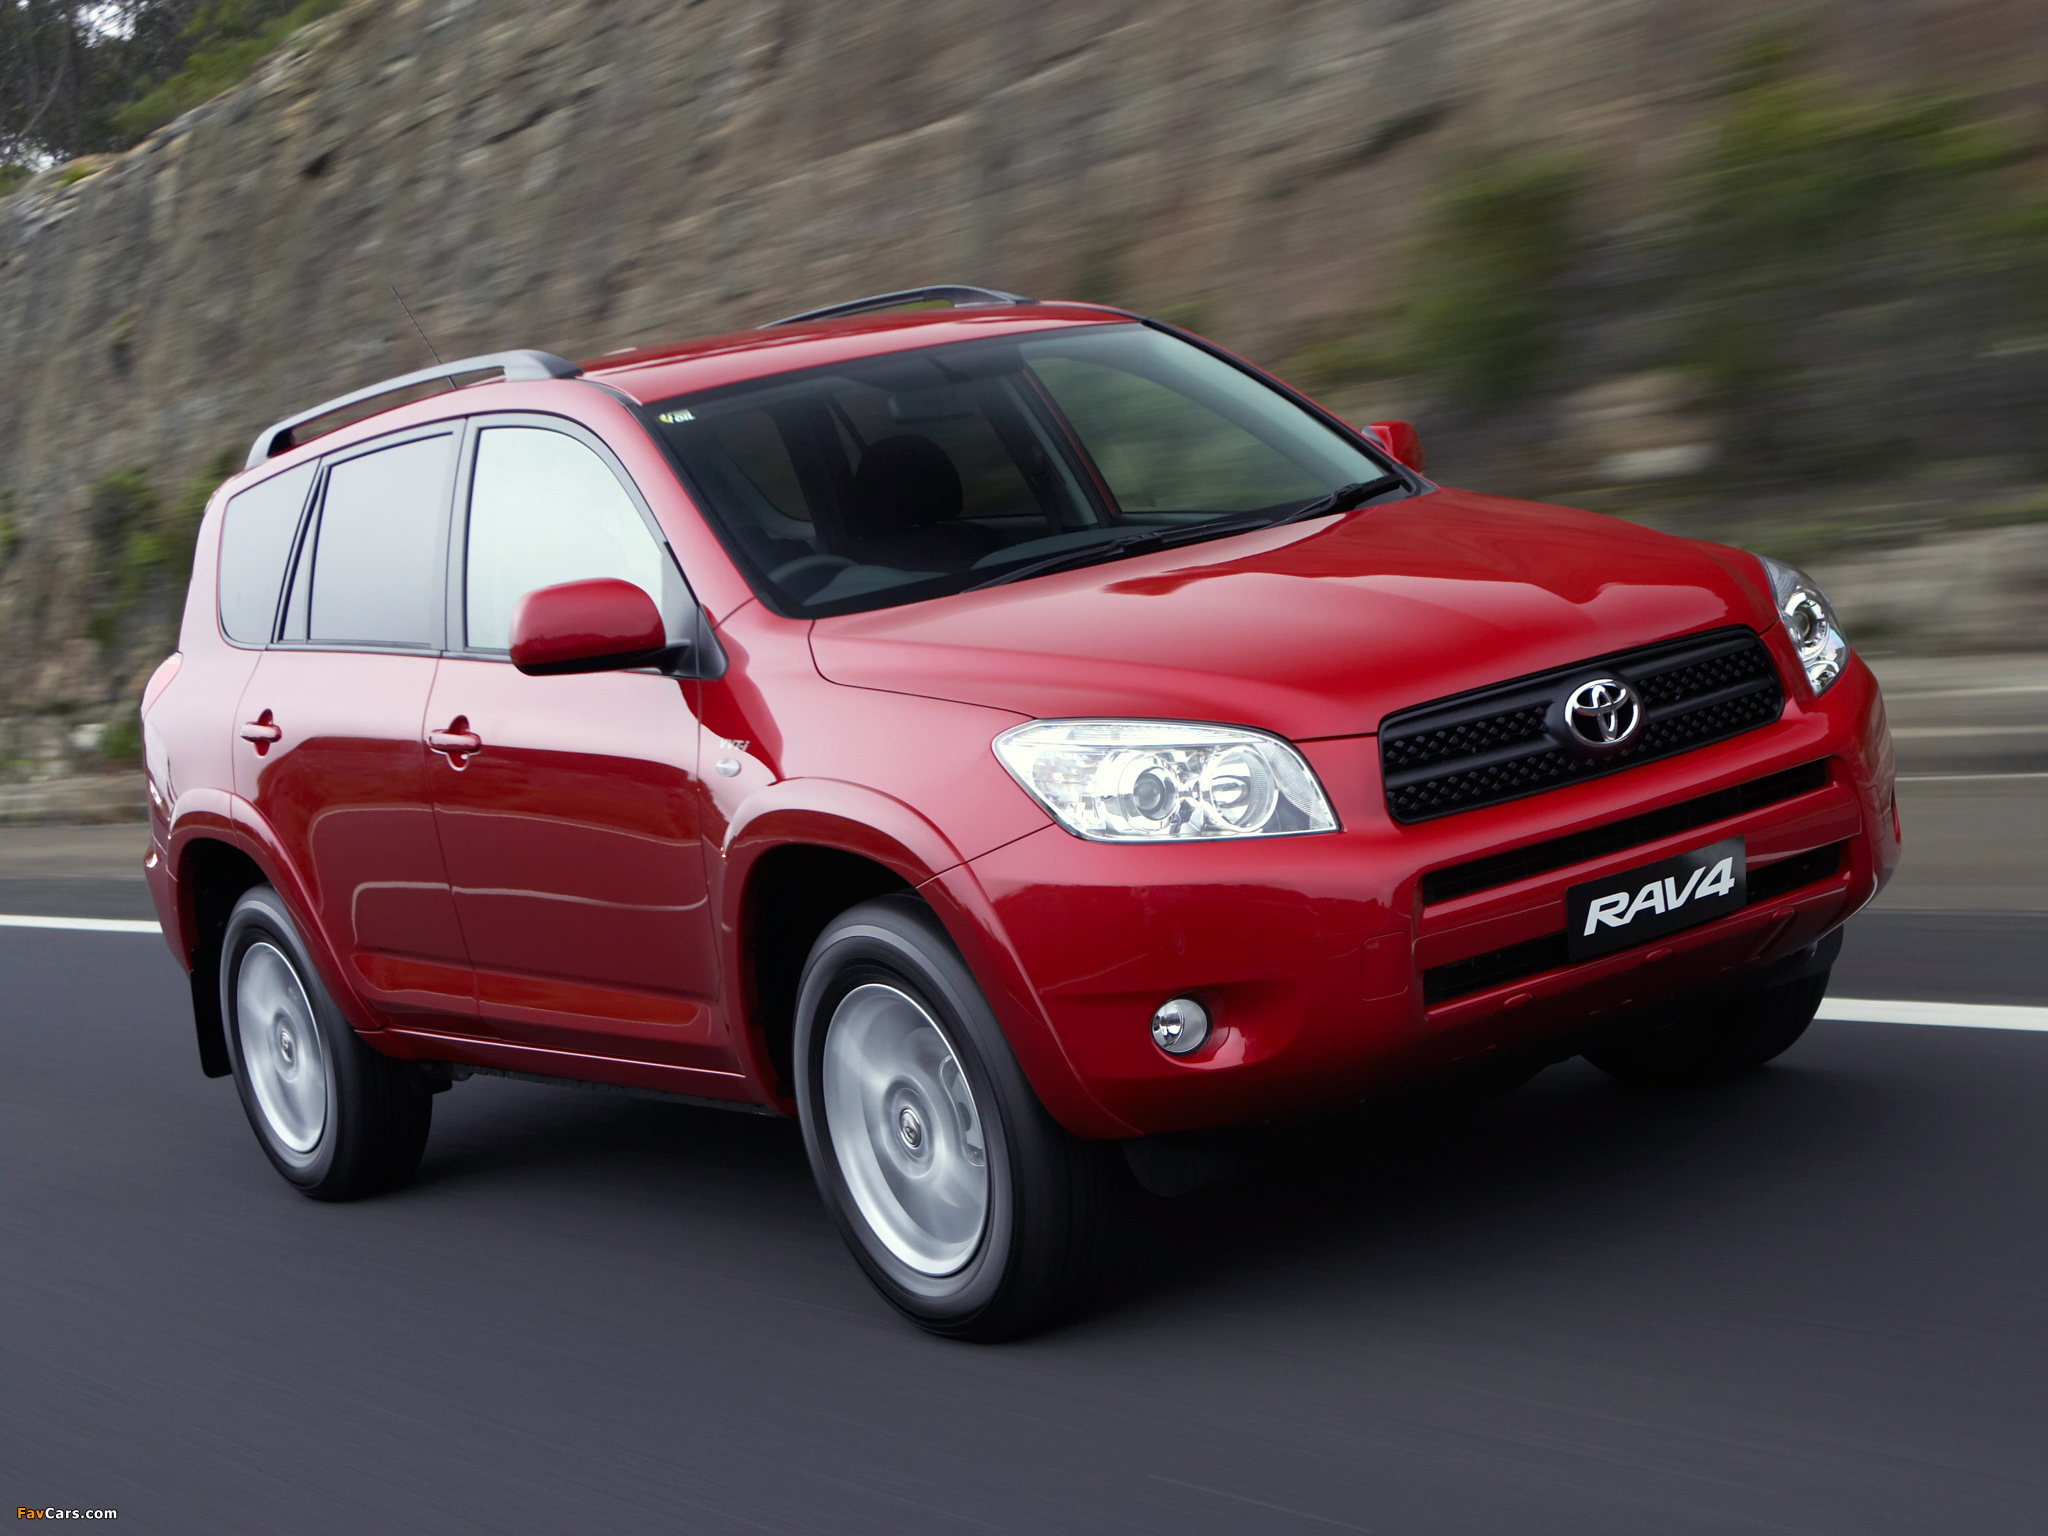 toyota rav4 au spec 2006 08 wallpapers 2048x1536. Black Bedroom Furniture Sets. Home Design Ideas